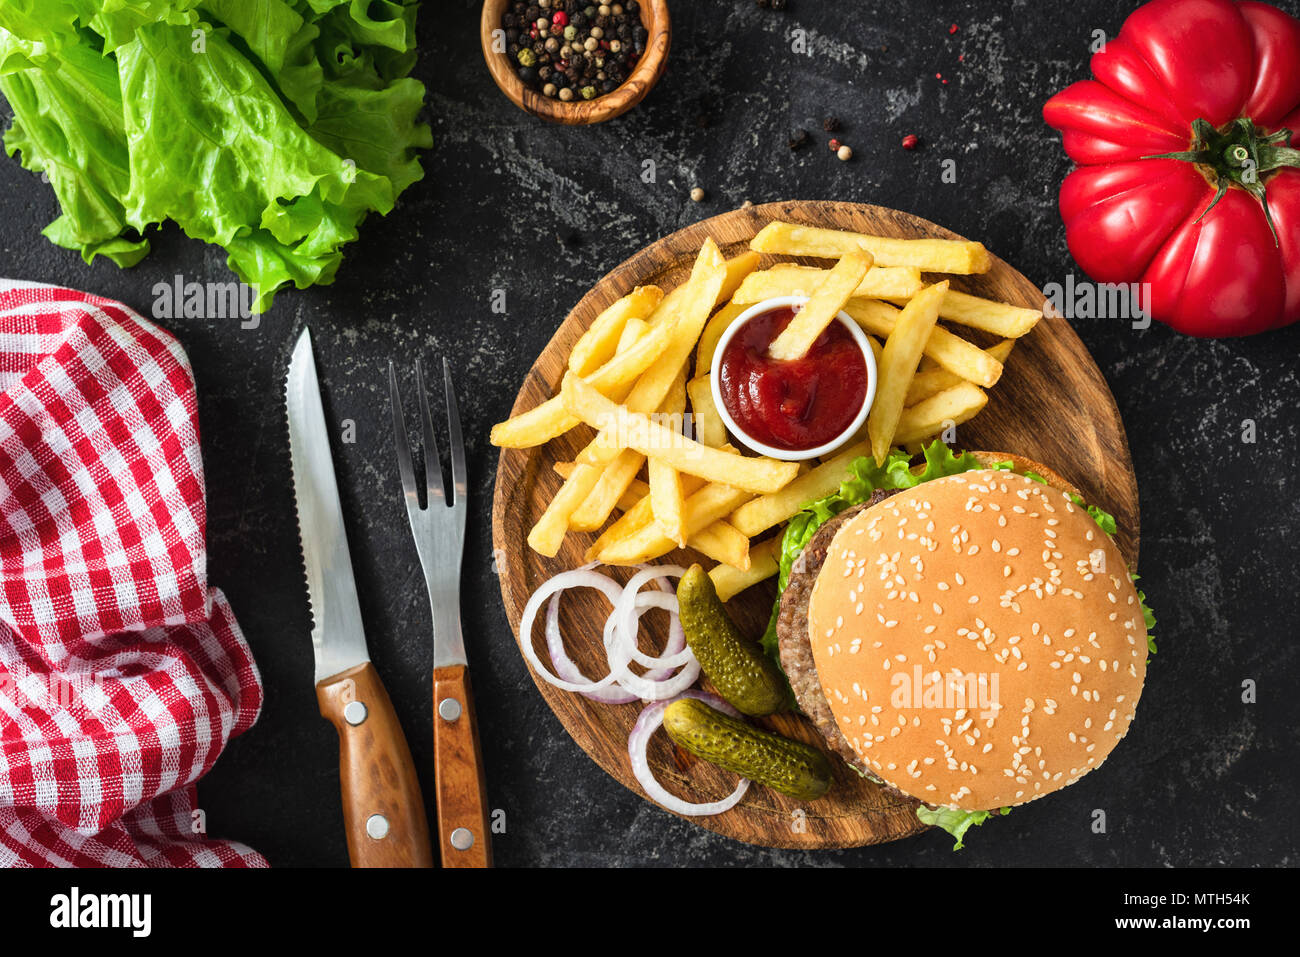 Beef burger with lettuce and tomato, potato fries and ketchup on dark background. Table top view. Fast food, unhealthy eating concept - Stock Image